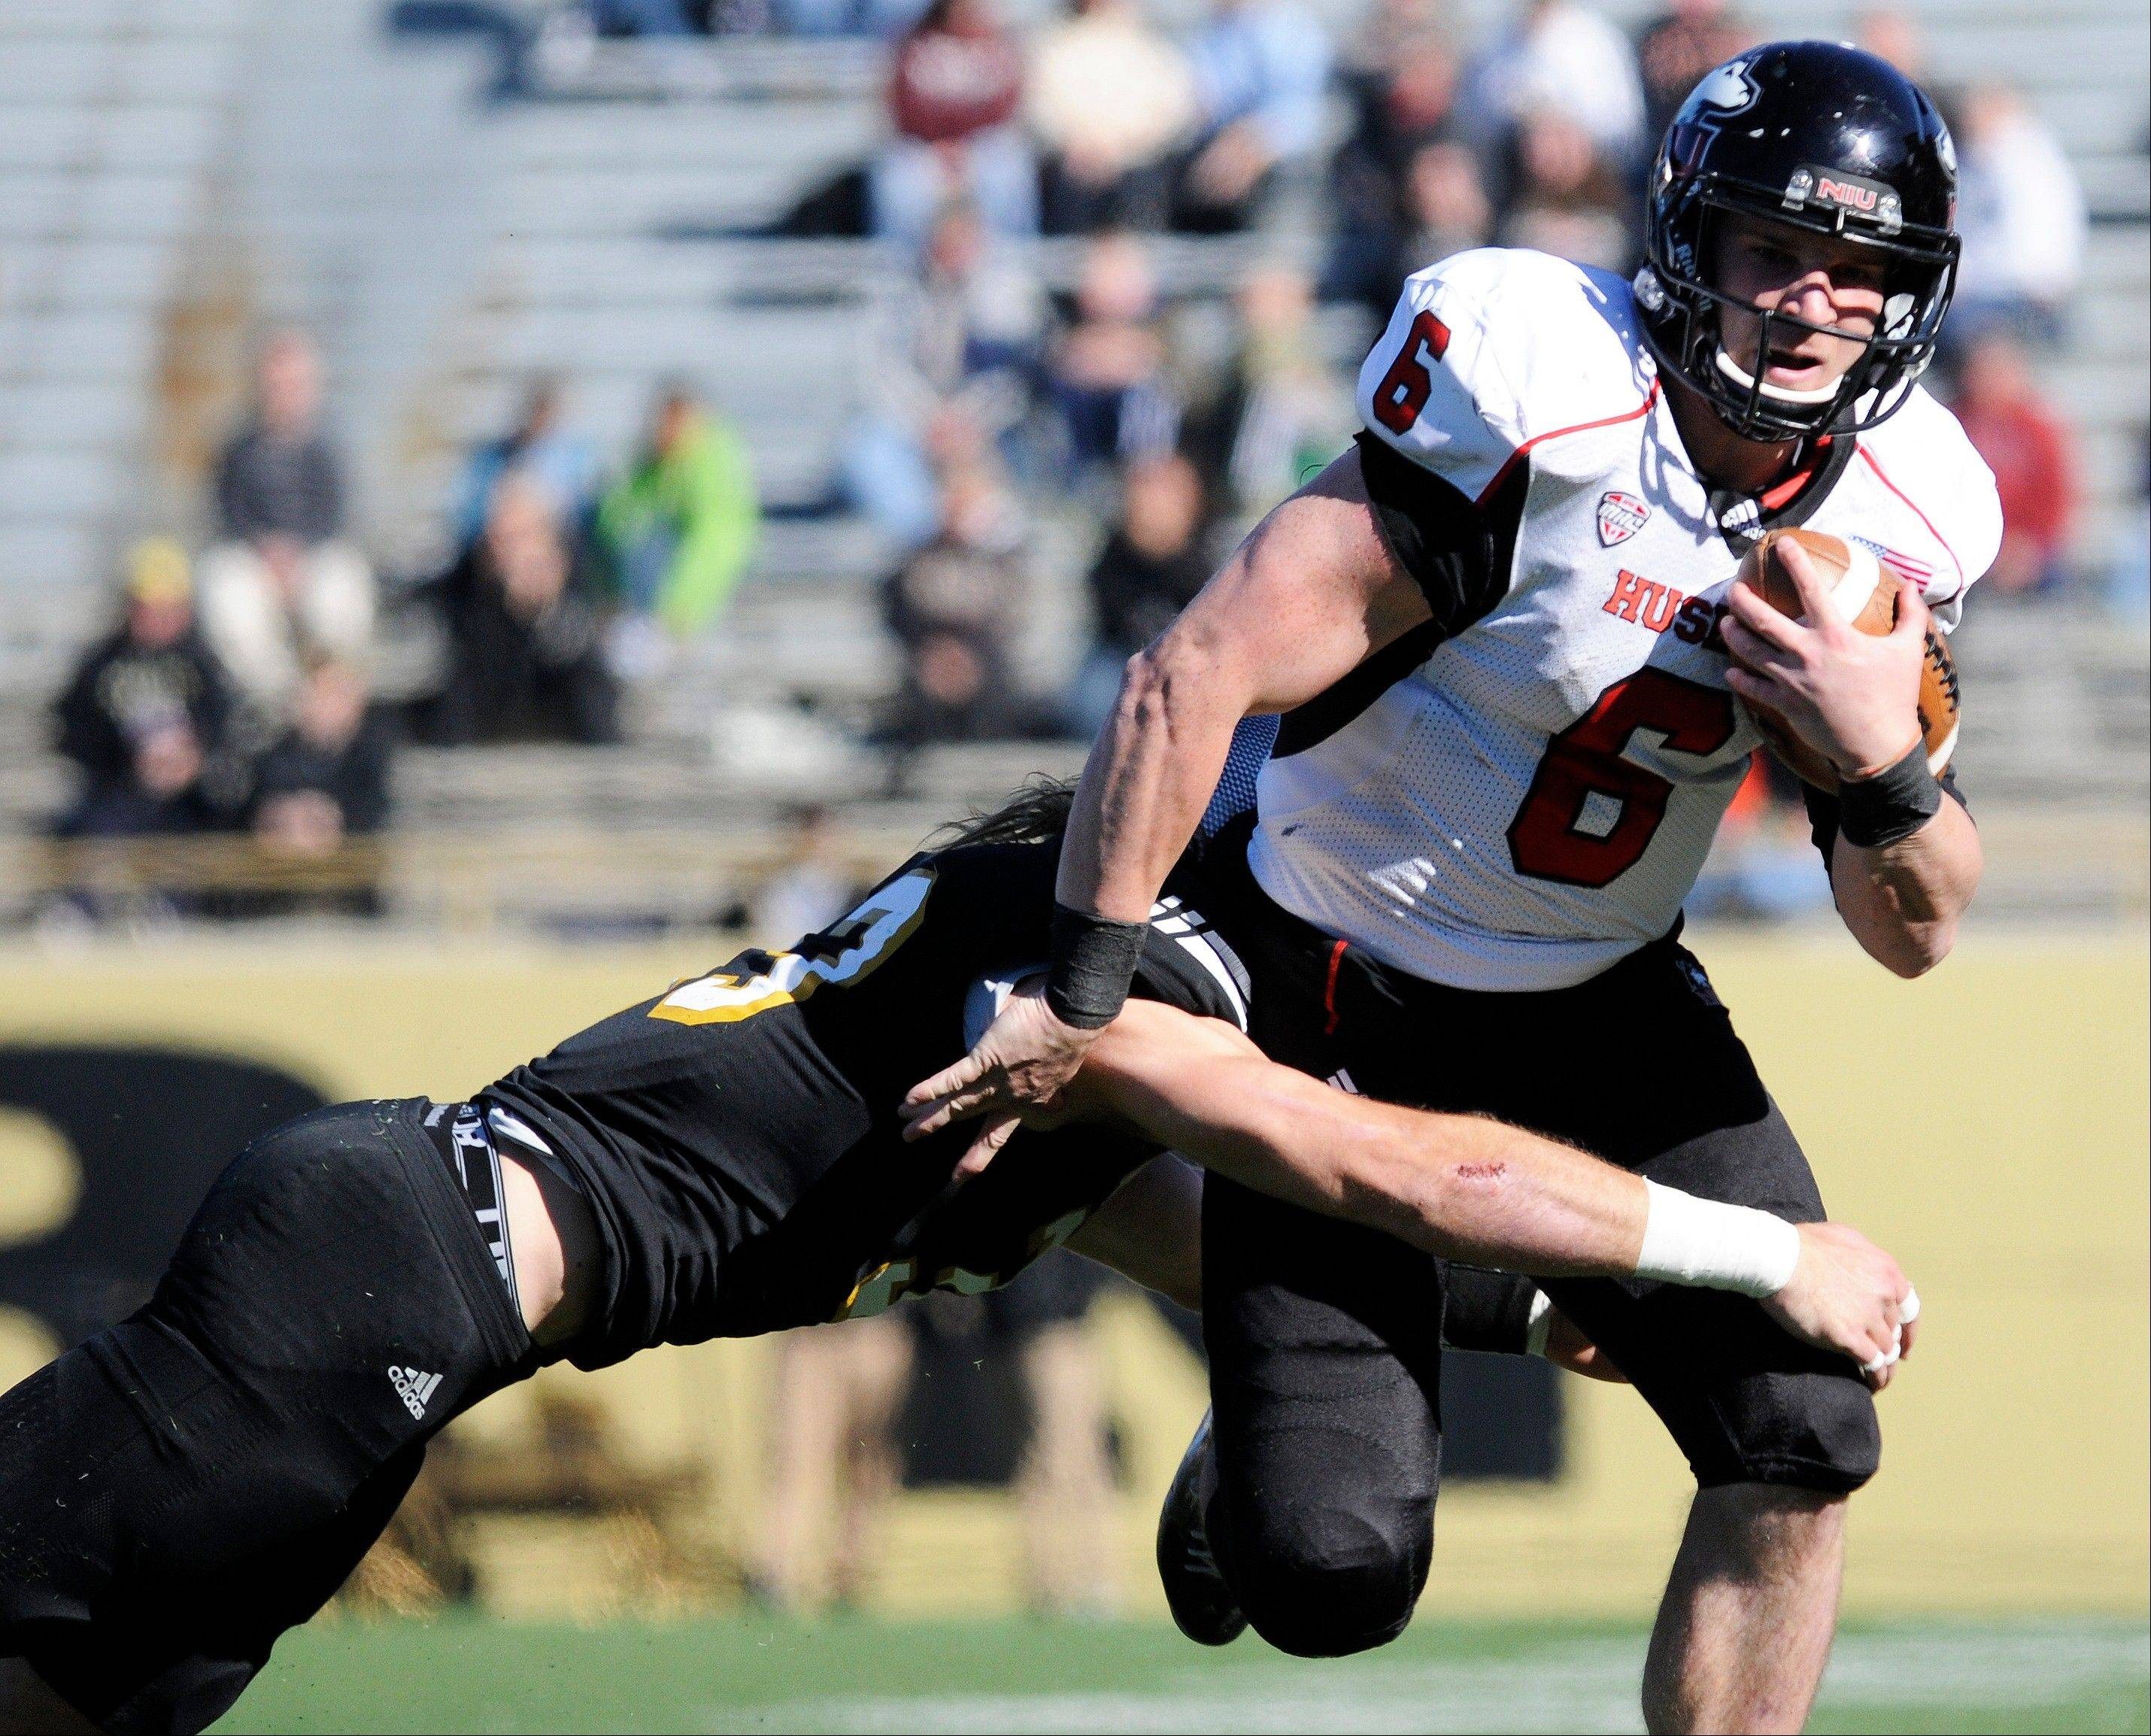 Western Michigan free safety Justin Currie brings down Northern Illinois quarterback Jordan Lynch during the first half of an NCAA college football game Saturday, Oct. 27, 2012, in Kalamazoo, Mich. (AP Photo/The Gazette, Matt Gade) LOCAL TV OUT LOCAL INTERNET OUT